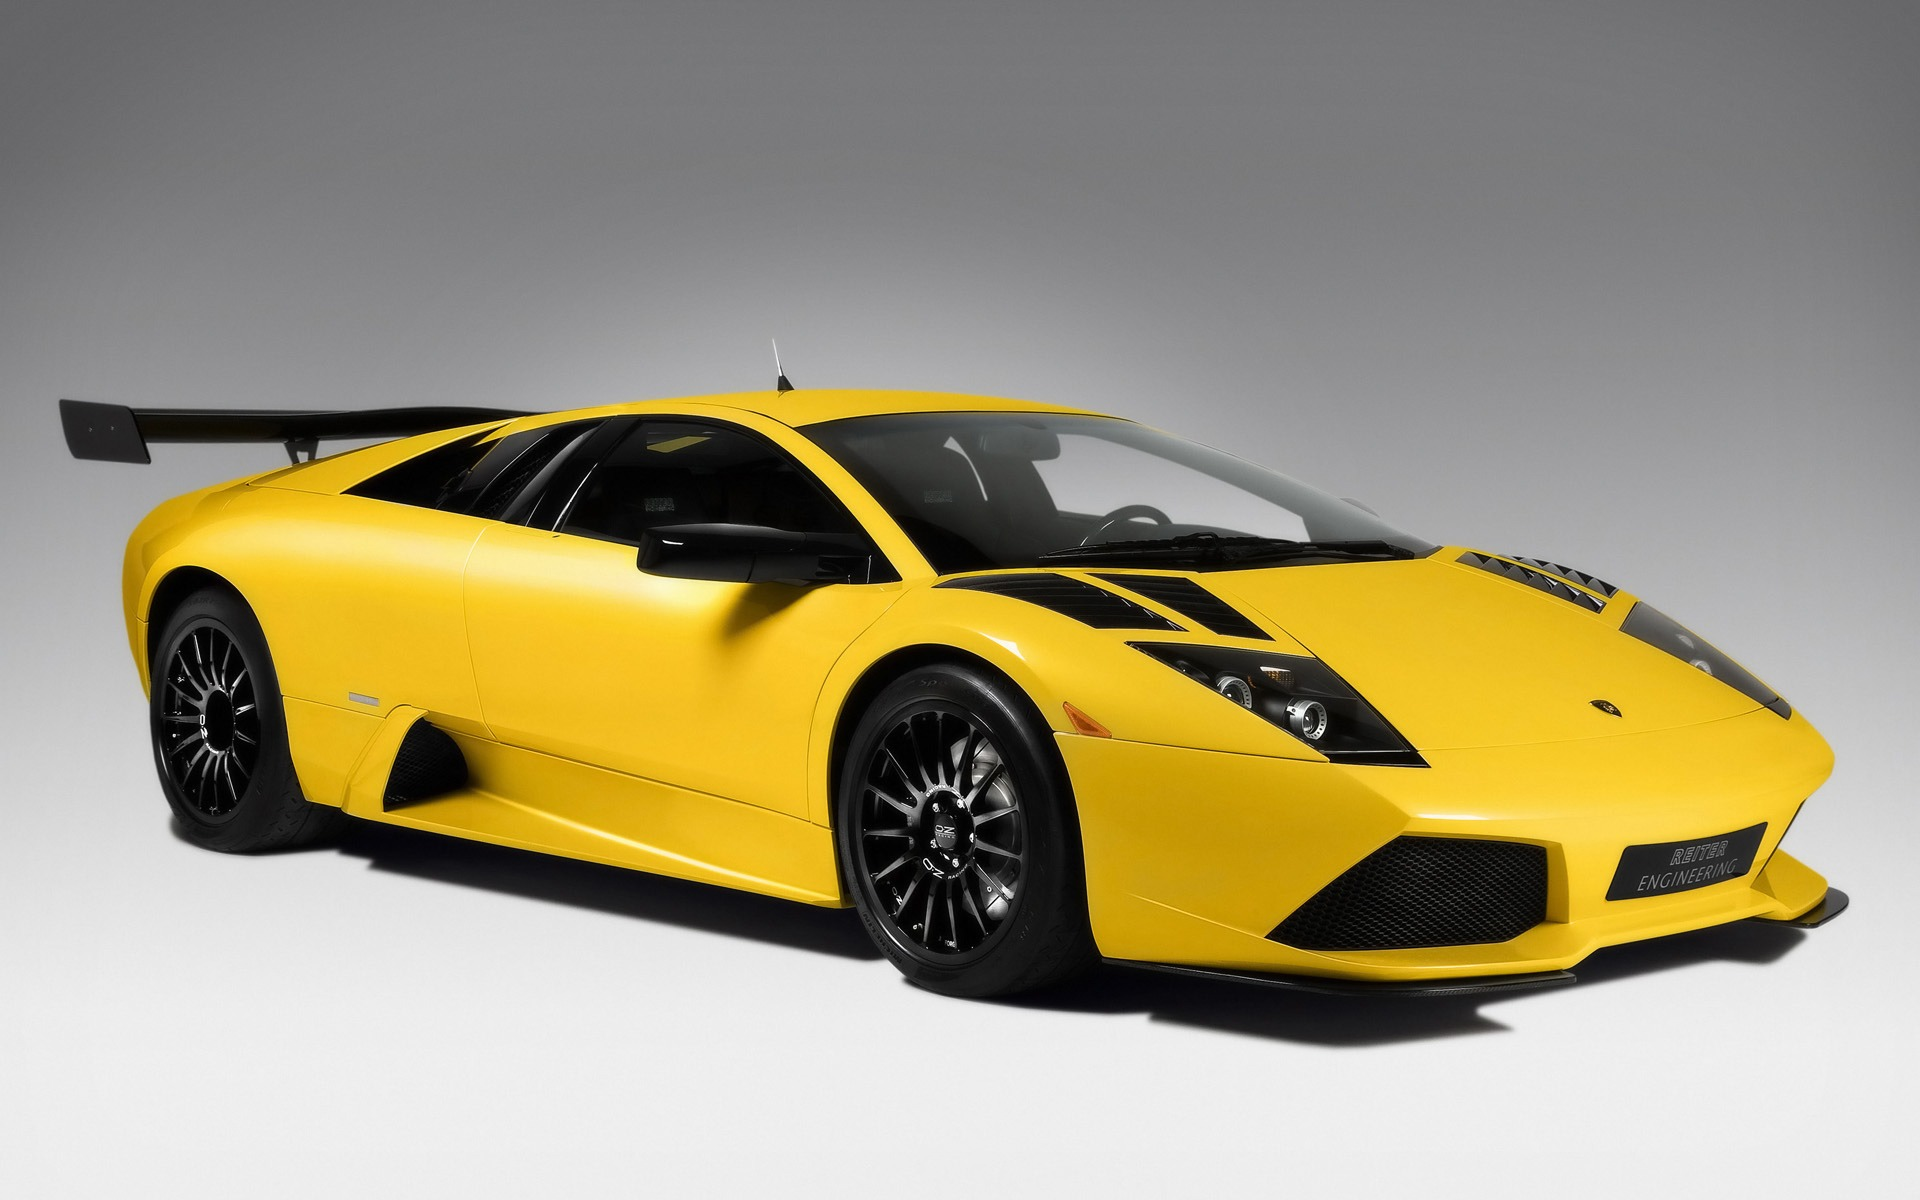 Murcielago Streetversion Wallpaper Lamborghini Cars Wallpapers